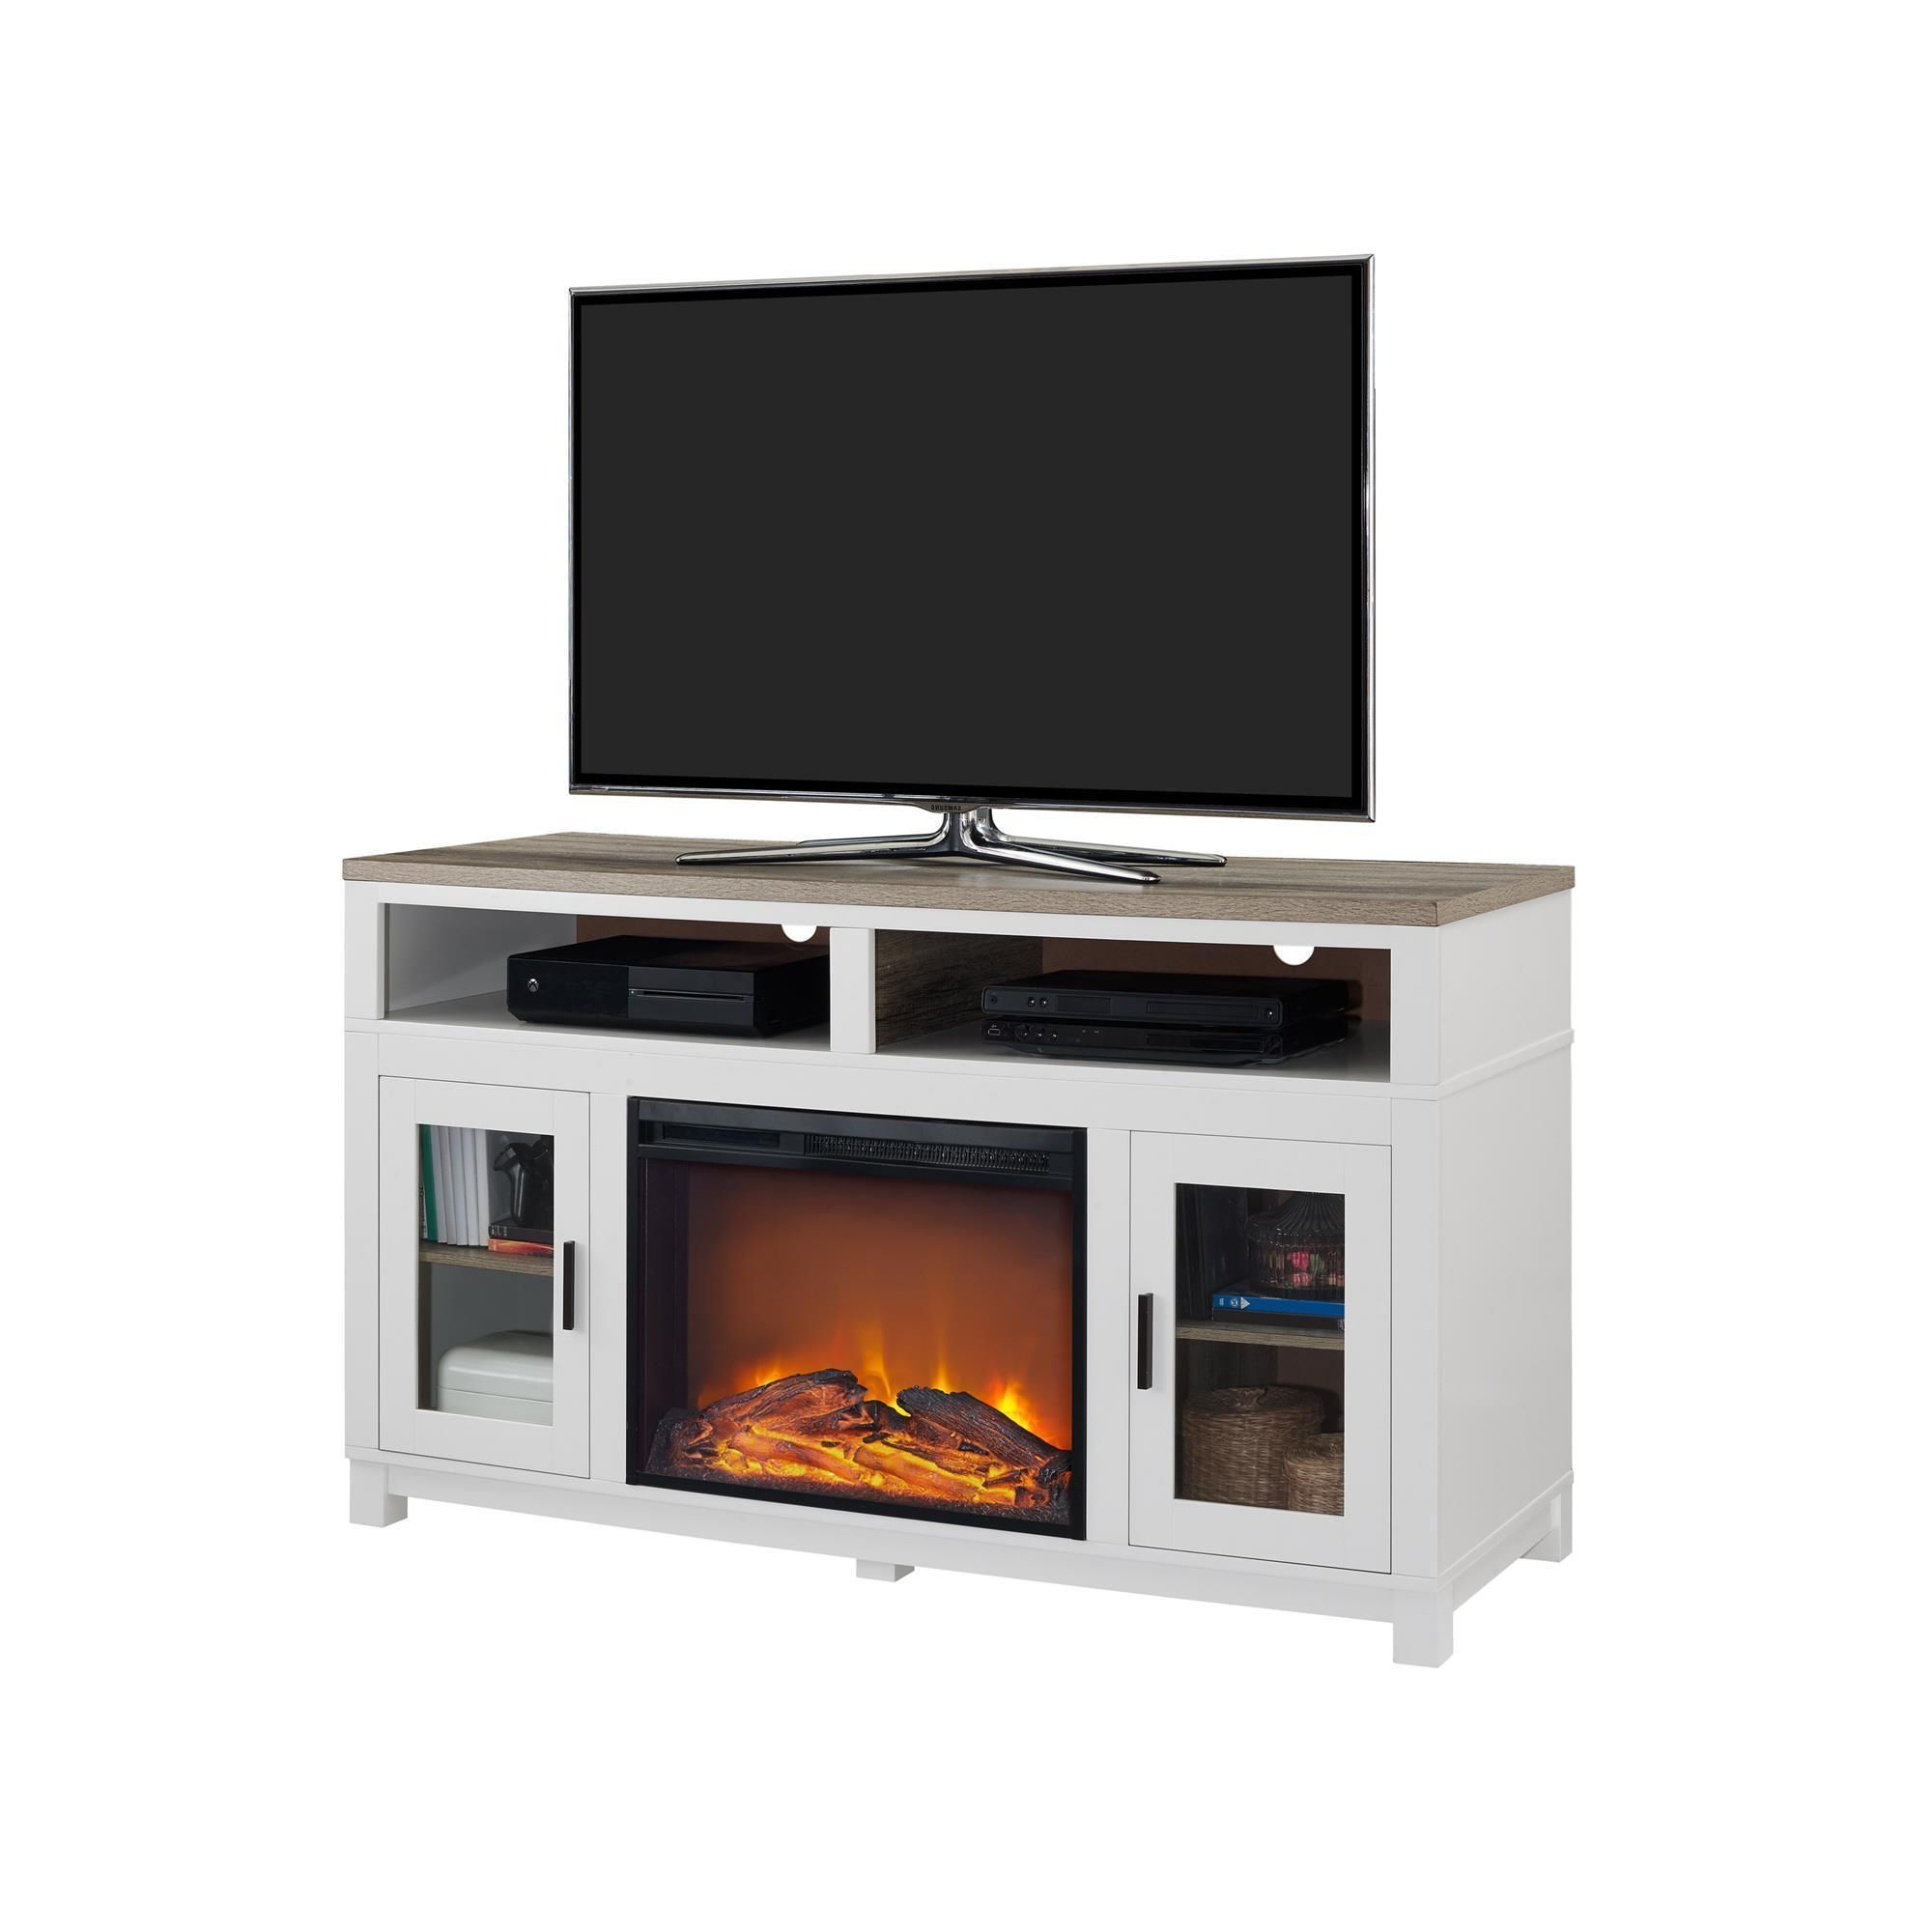 Ameriwood Home Carver Electric Fireplace Tv Stand For Tvs Up To 60 Inside Popular Oxford 60 Inch Tv Stands (Gallery 18 of 20)